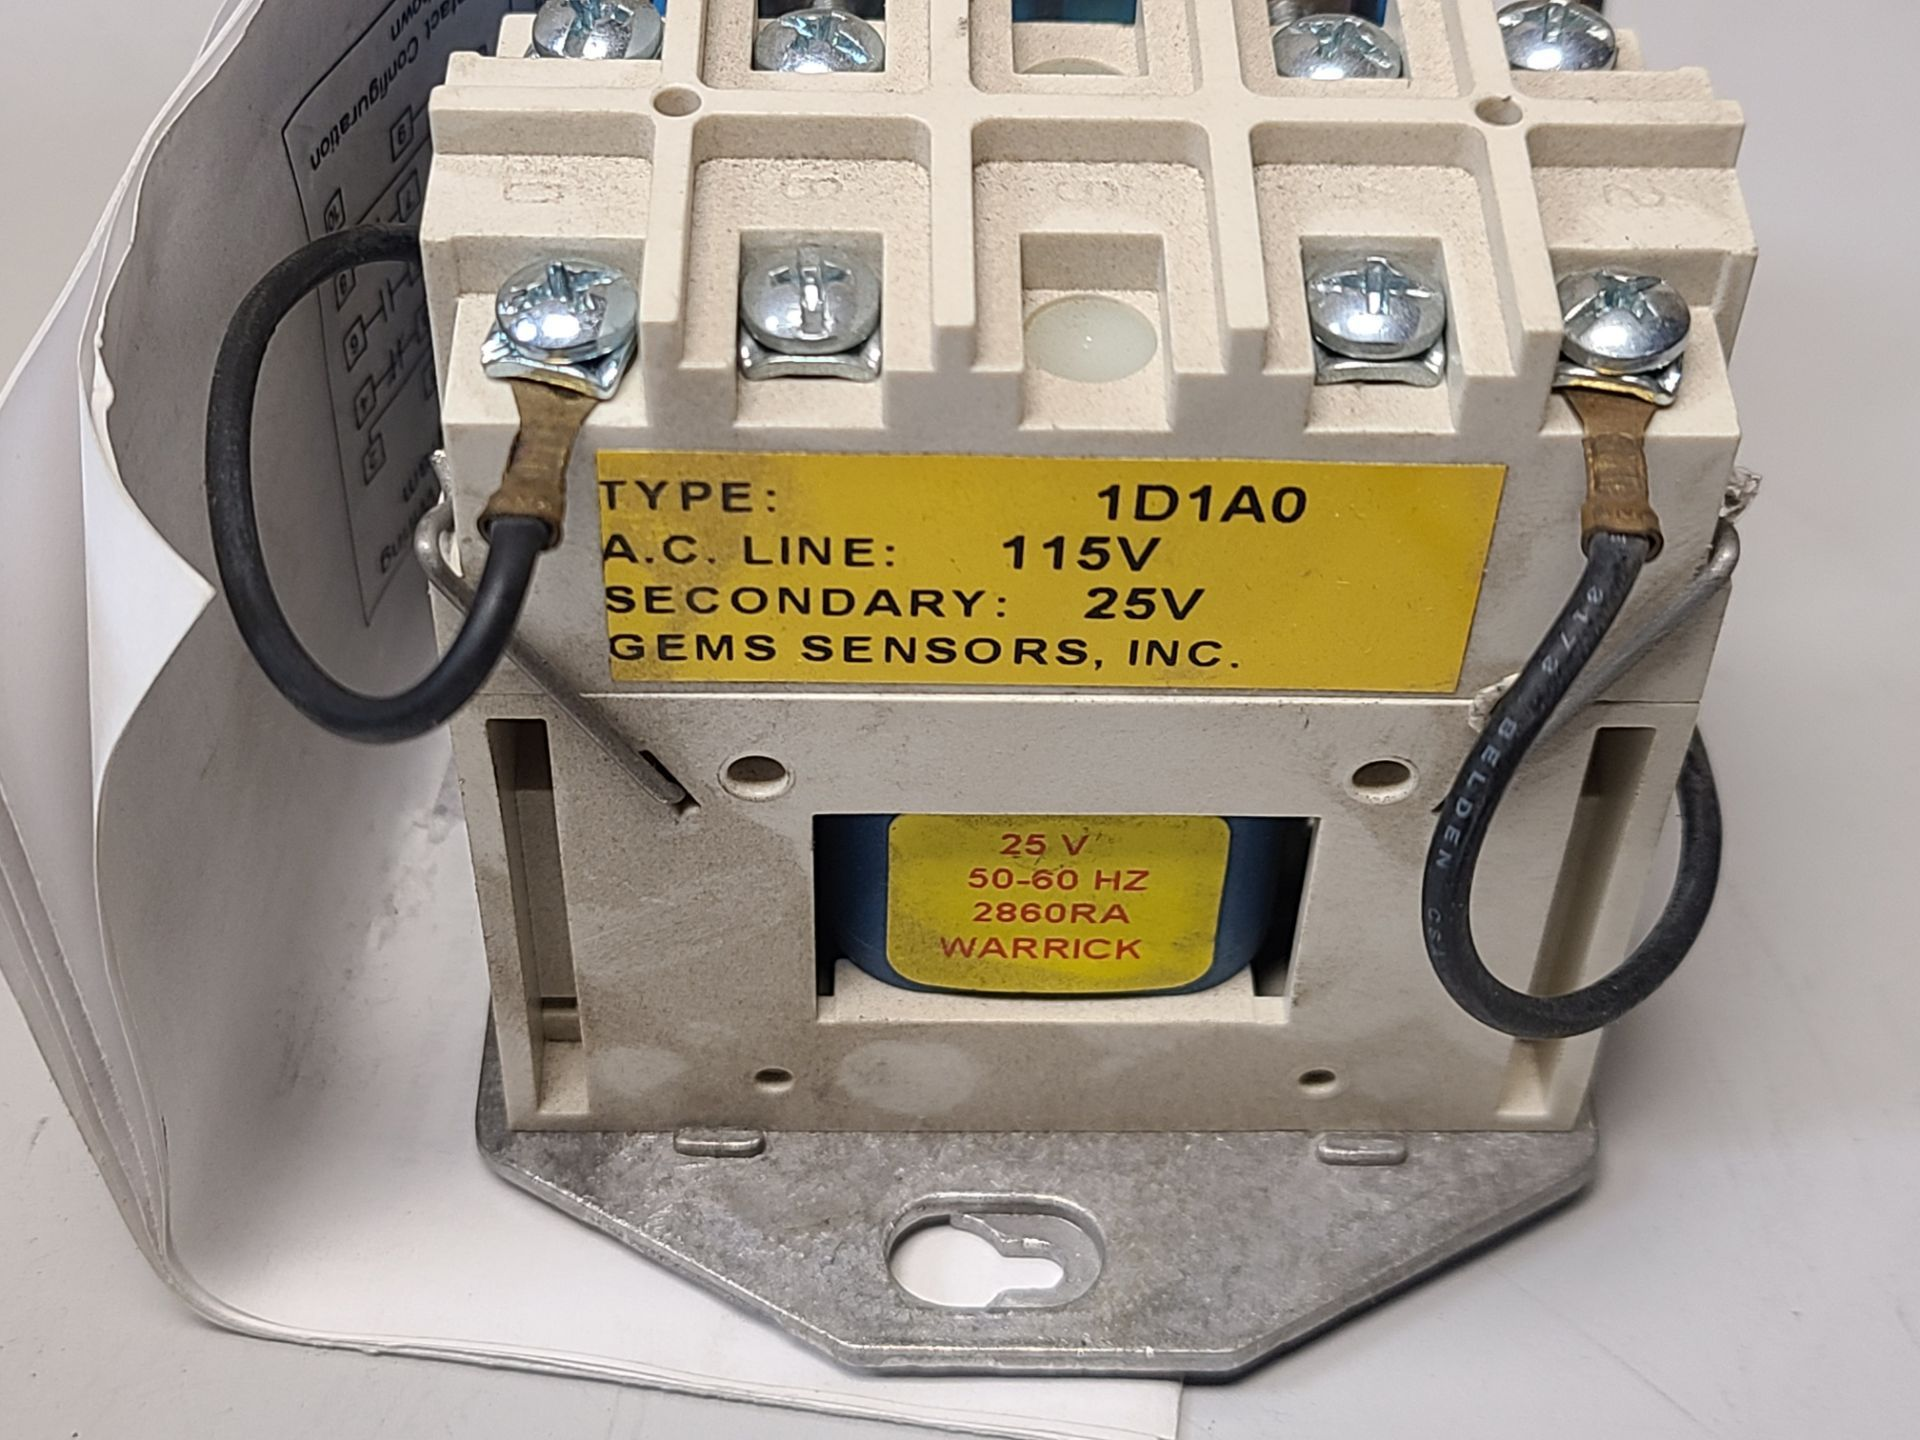 NEW WARRICK/GEMS CONTROL RELAY - Image 4 of 4